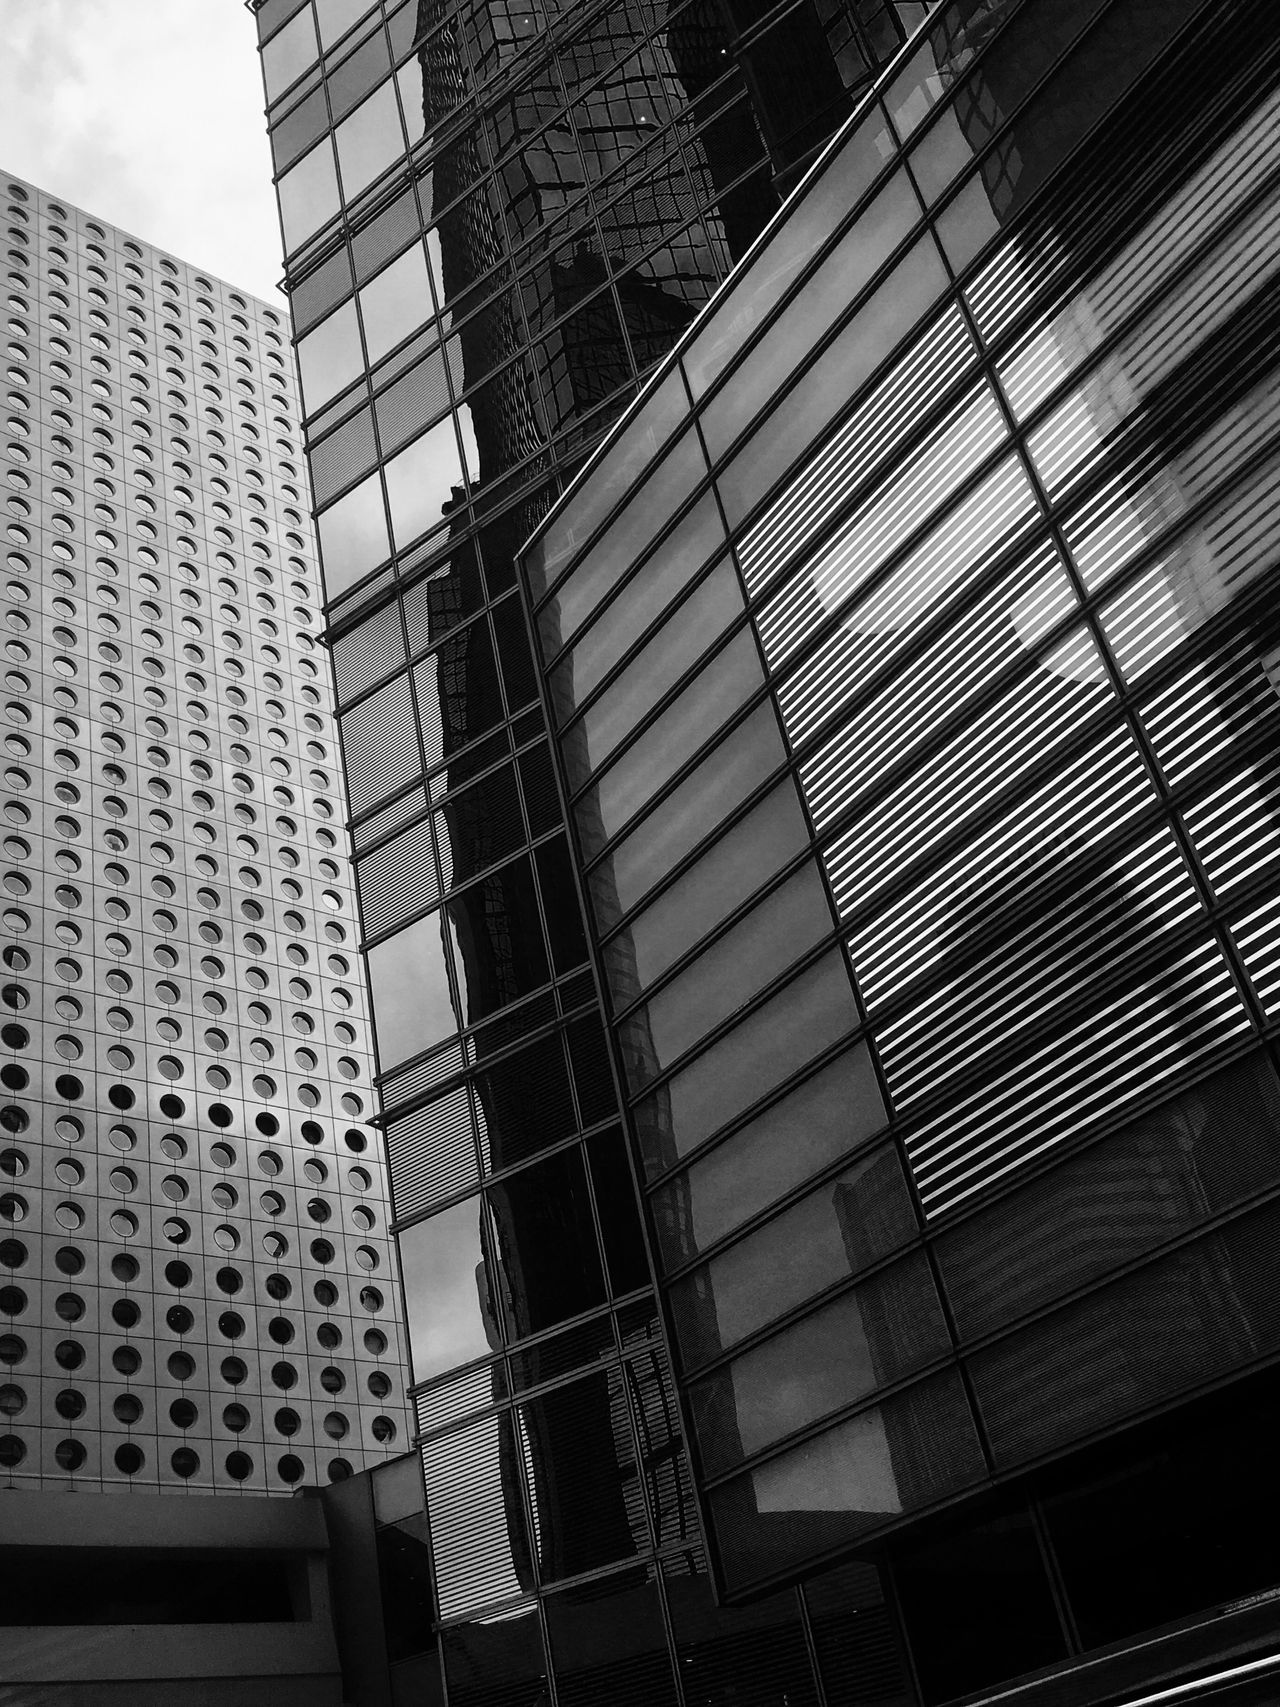 Light And Dark IPhoneography Architecture Contrast Abstract Monochrome Patterns & Textures Cityscape Urban Geometry Contrast Architecture Curtain Walls Reflections And Shadows